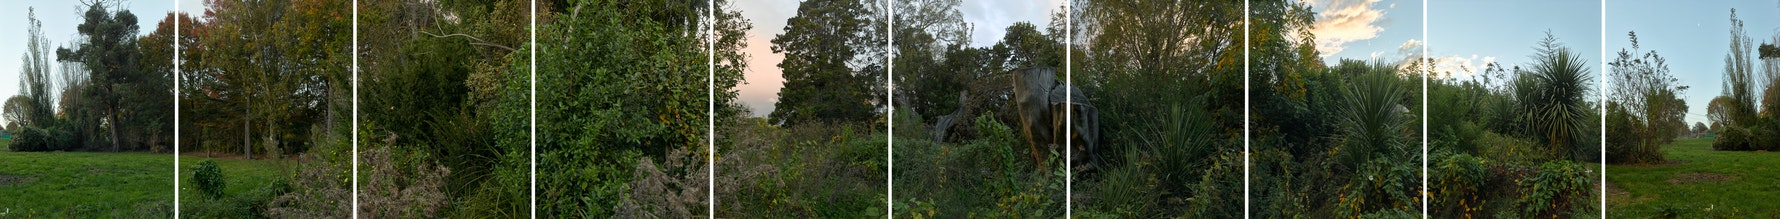 River Road, 2018. Heritage garden after demolition. 360 degree panorama at dusk.